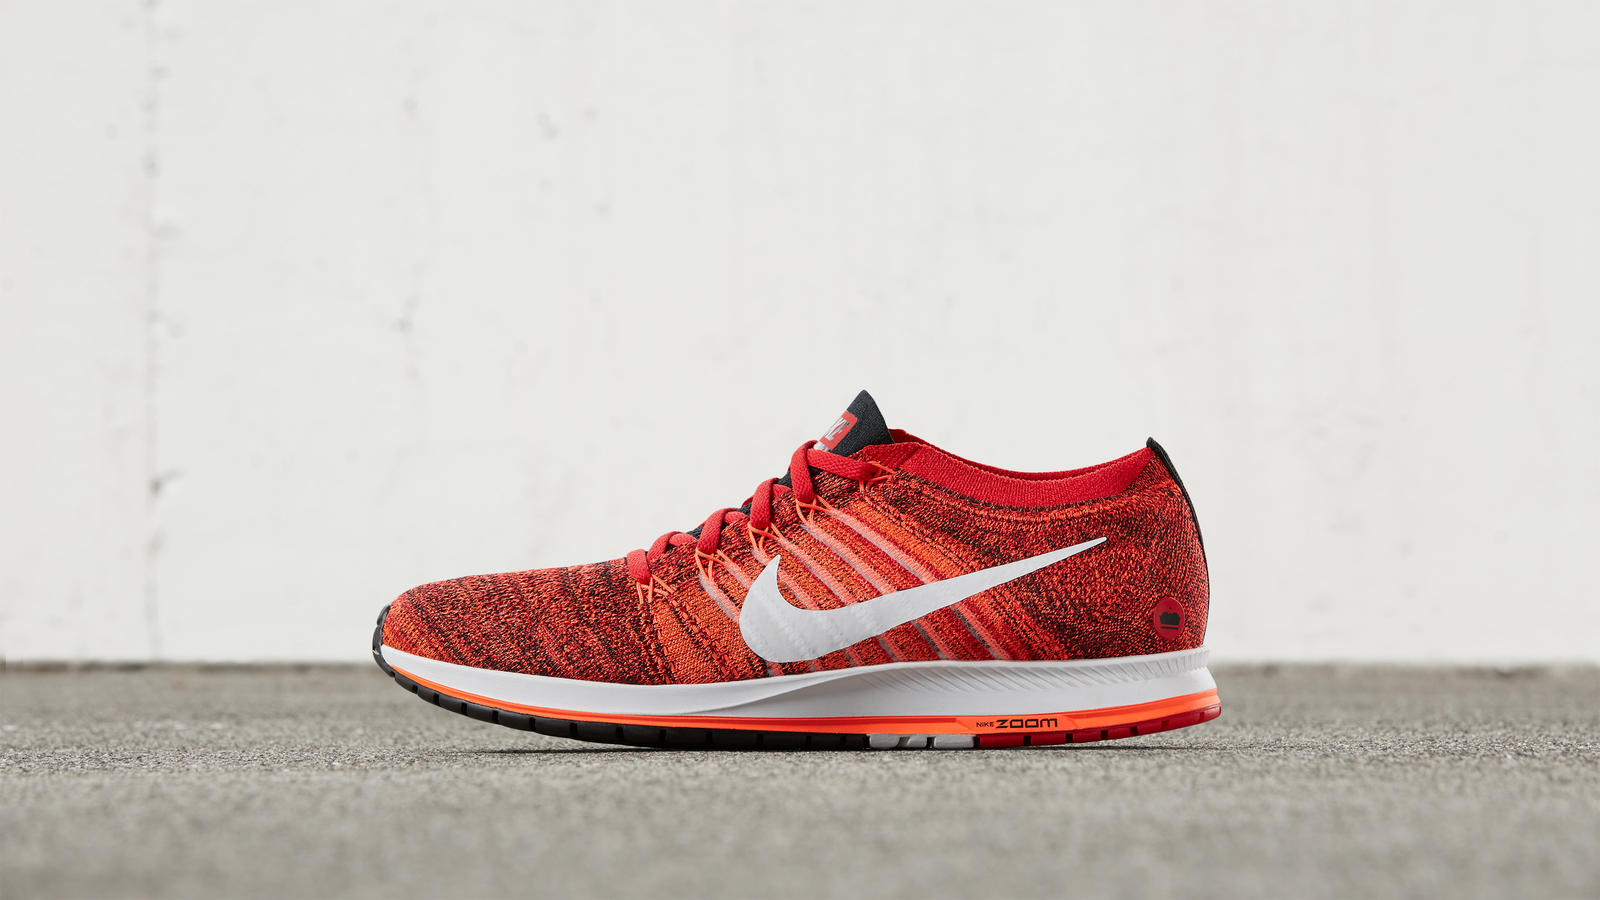 170320 footwear rn red flyknit streak 0120 hd 1600